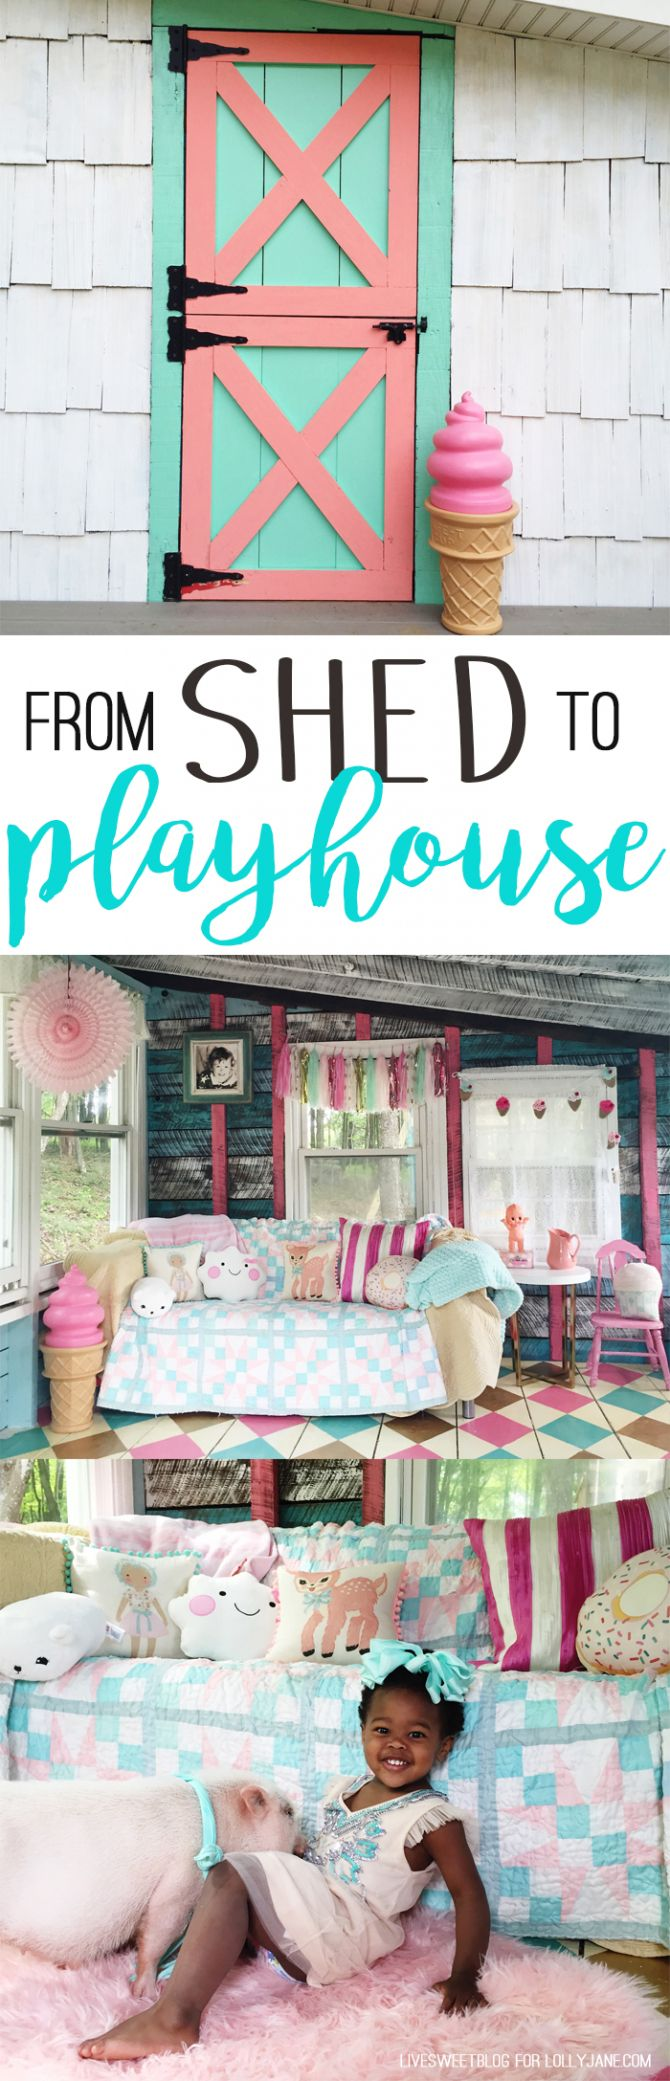 Darling old she shed turned playroom! Love the painted argyle, stripes + polka…